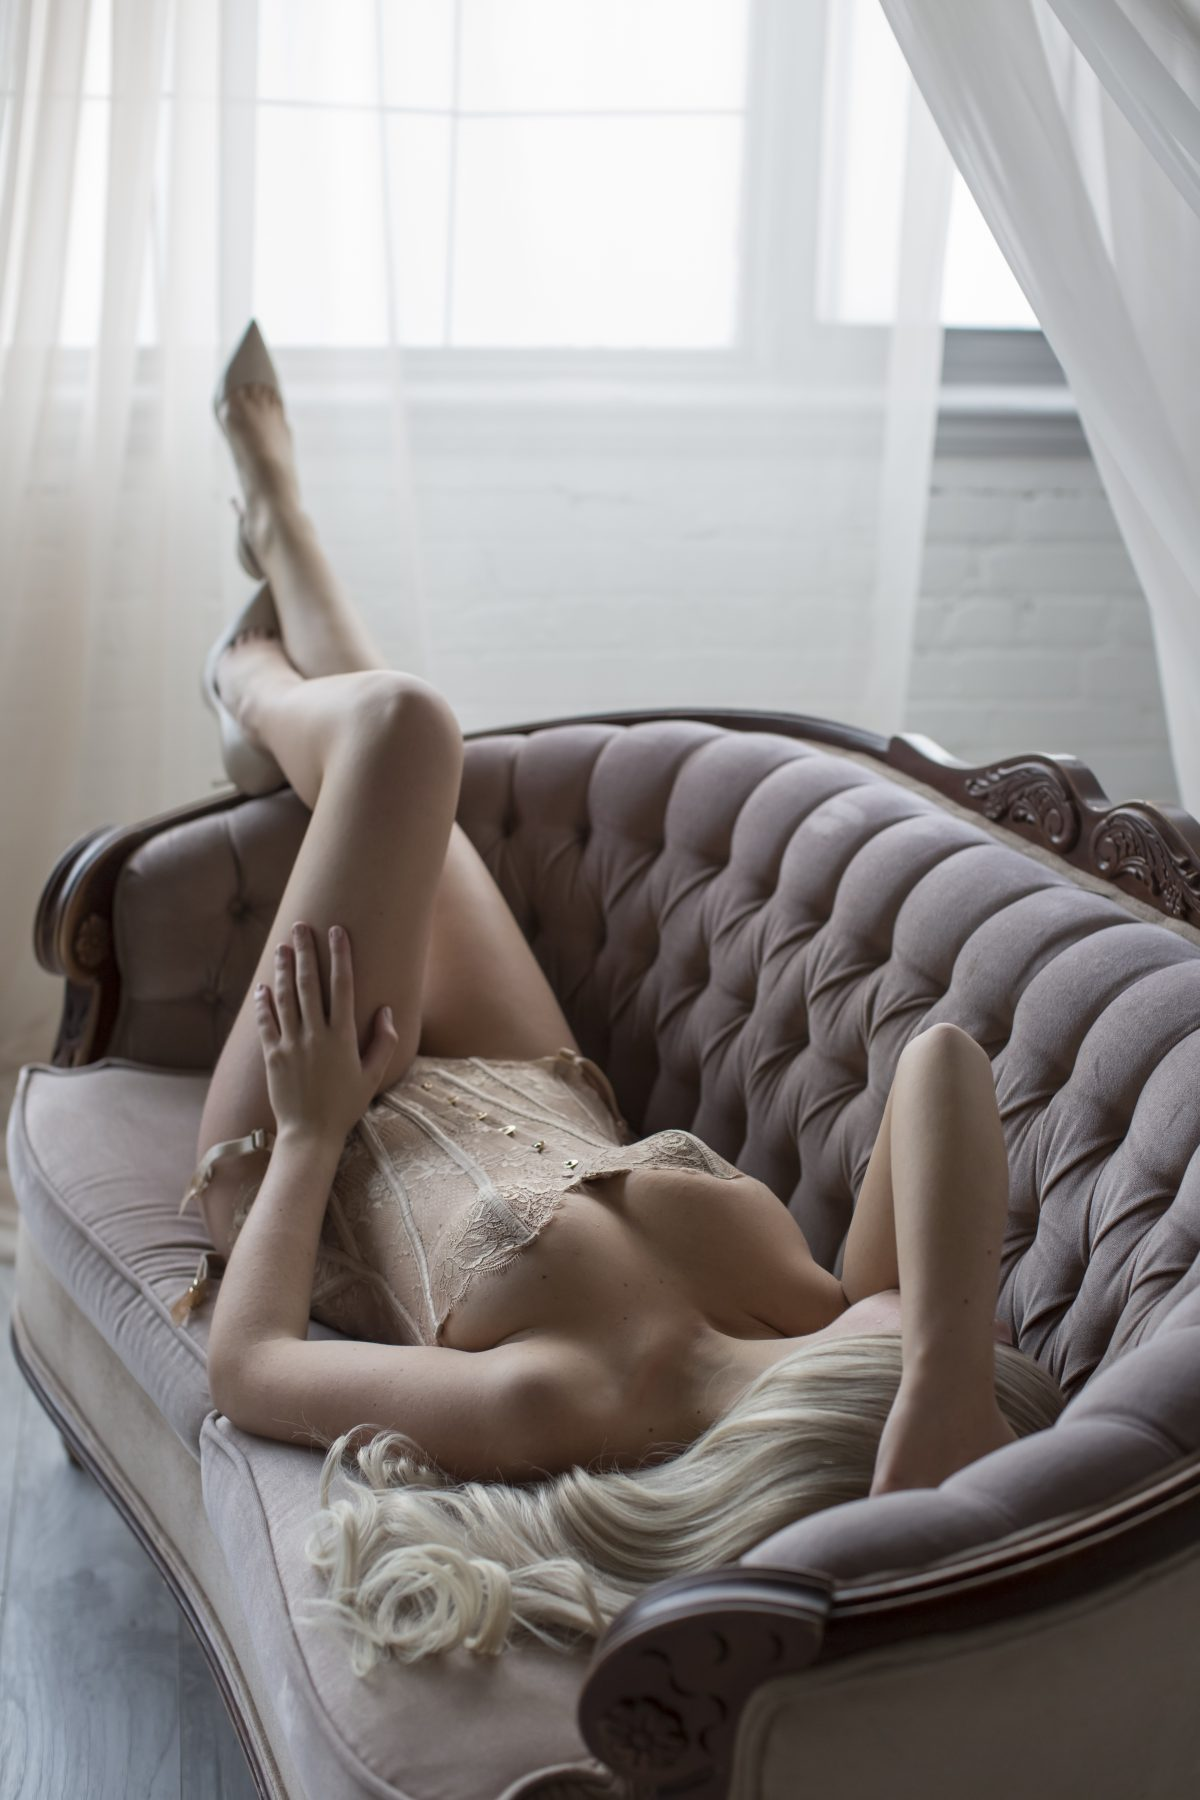 Toronto escorts companion upscale Pilar Interests Duo Couple-friendly Disability-friendly Non-smoking Age Young Figure Slender Petite Breasts Natural Hair Blonde Ethnicity European Tattoos None